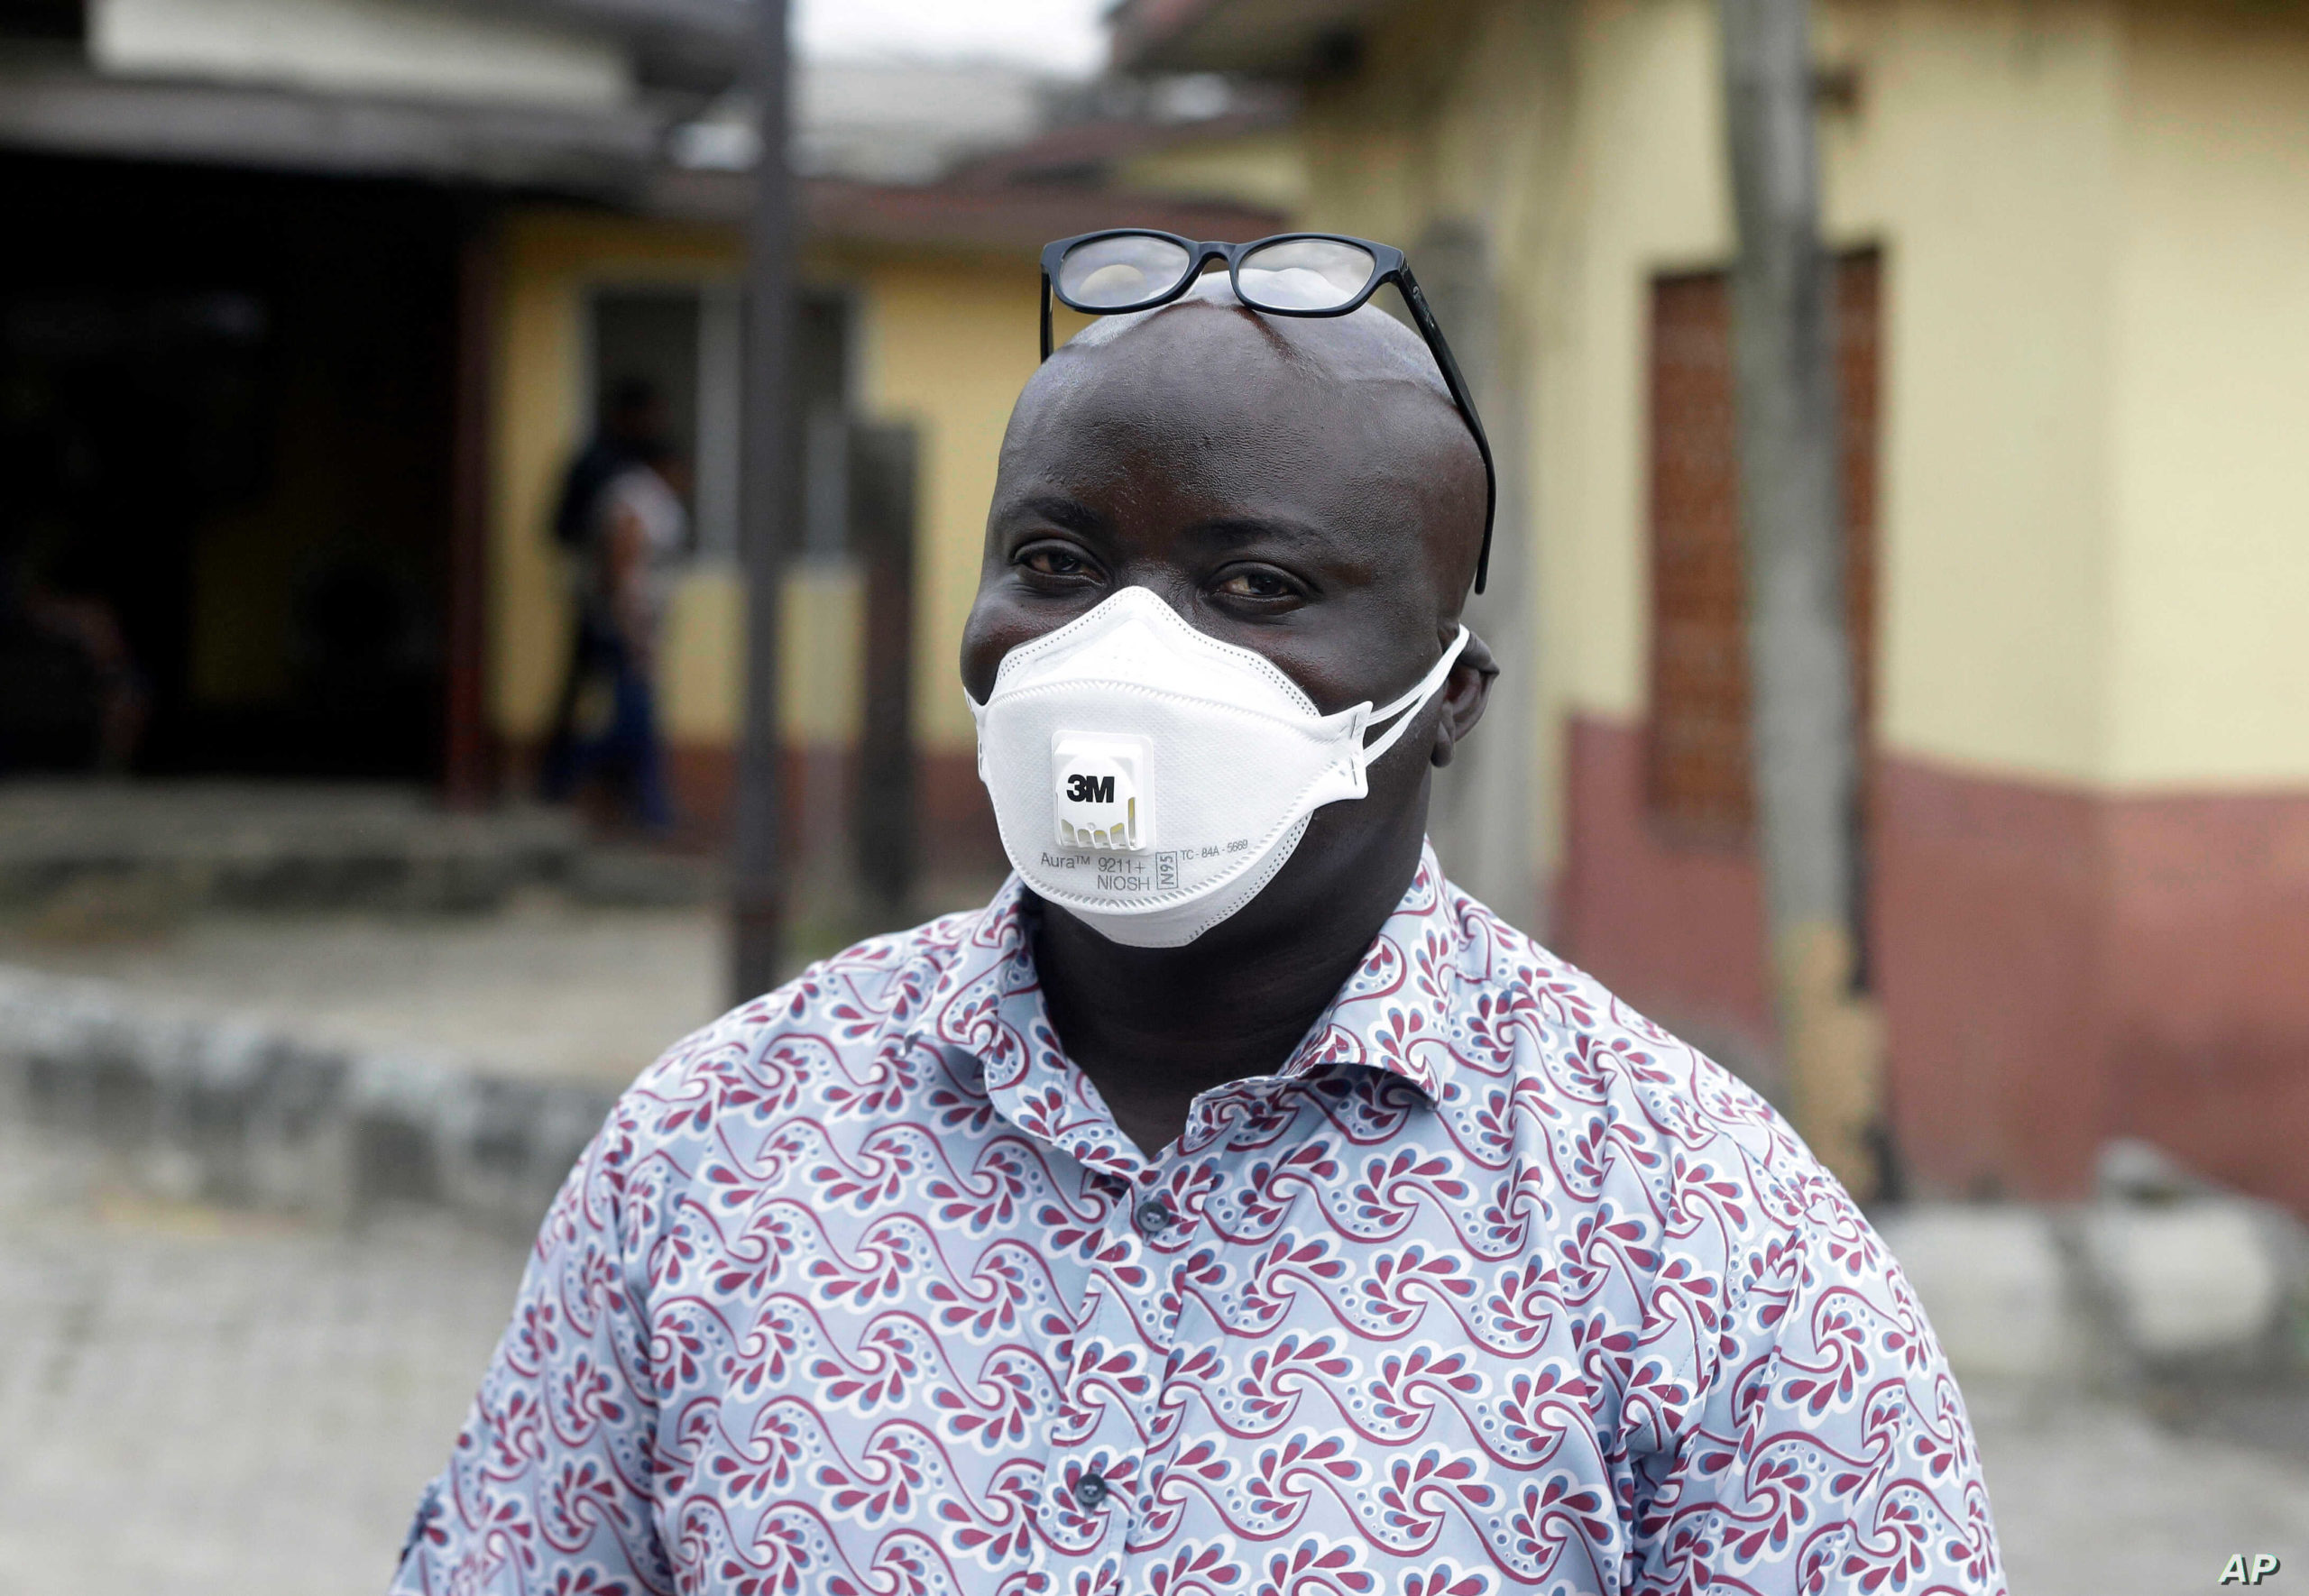 A man wearing a face mask in Nigeria